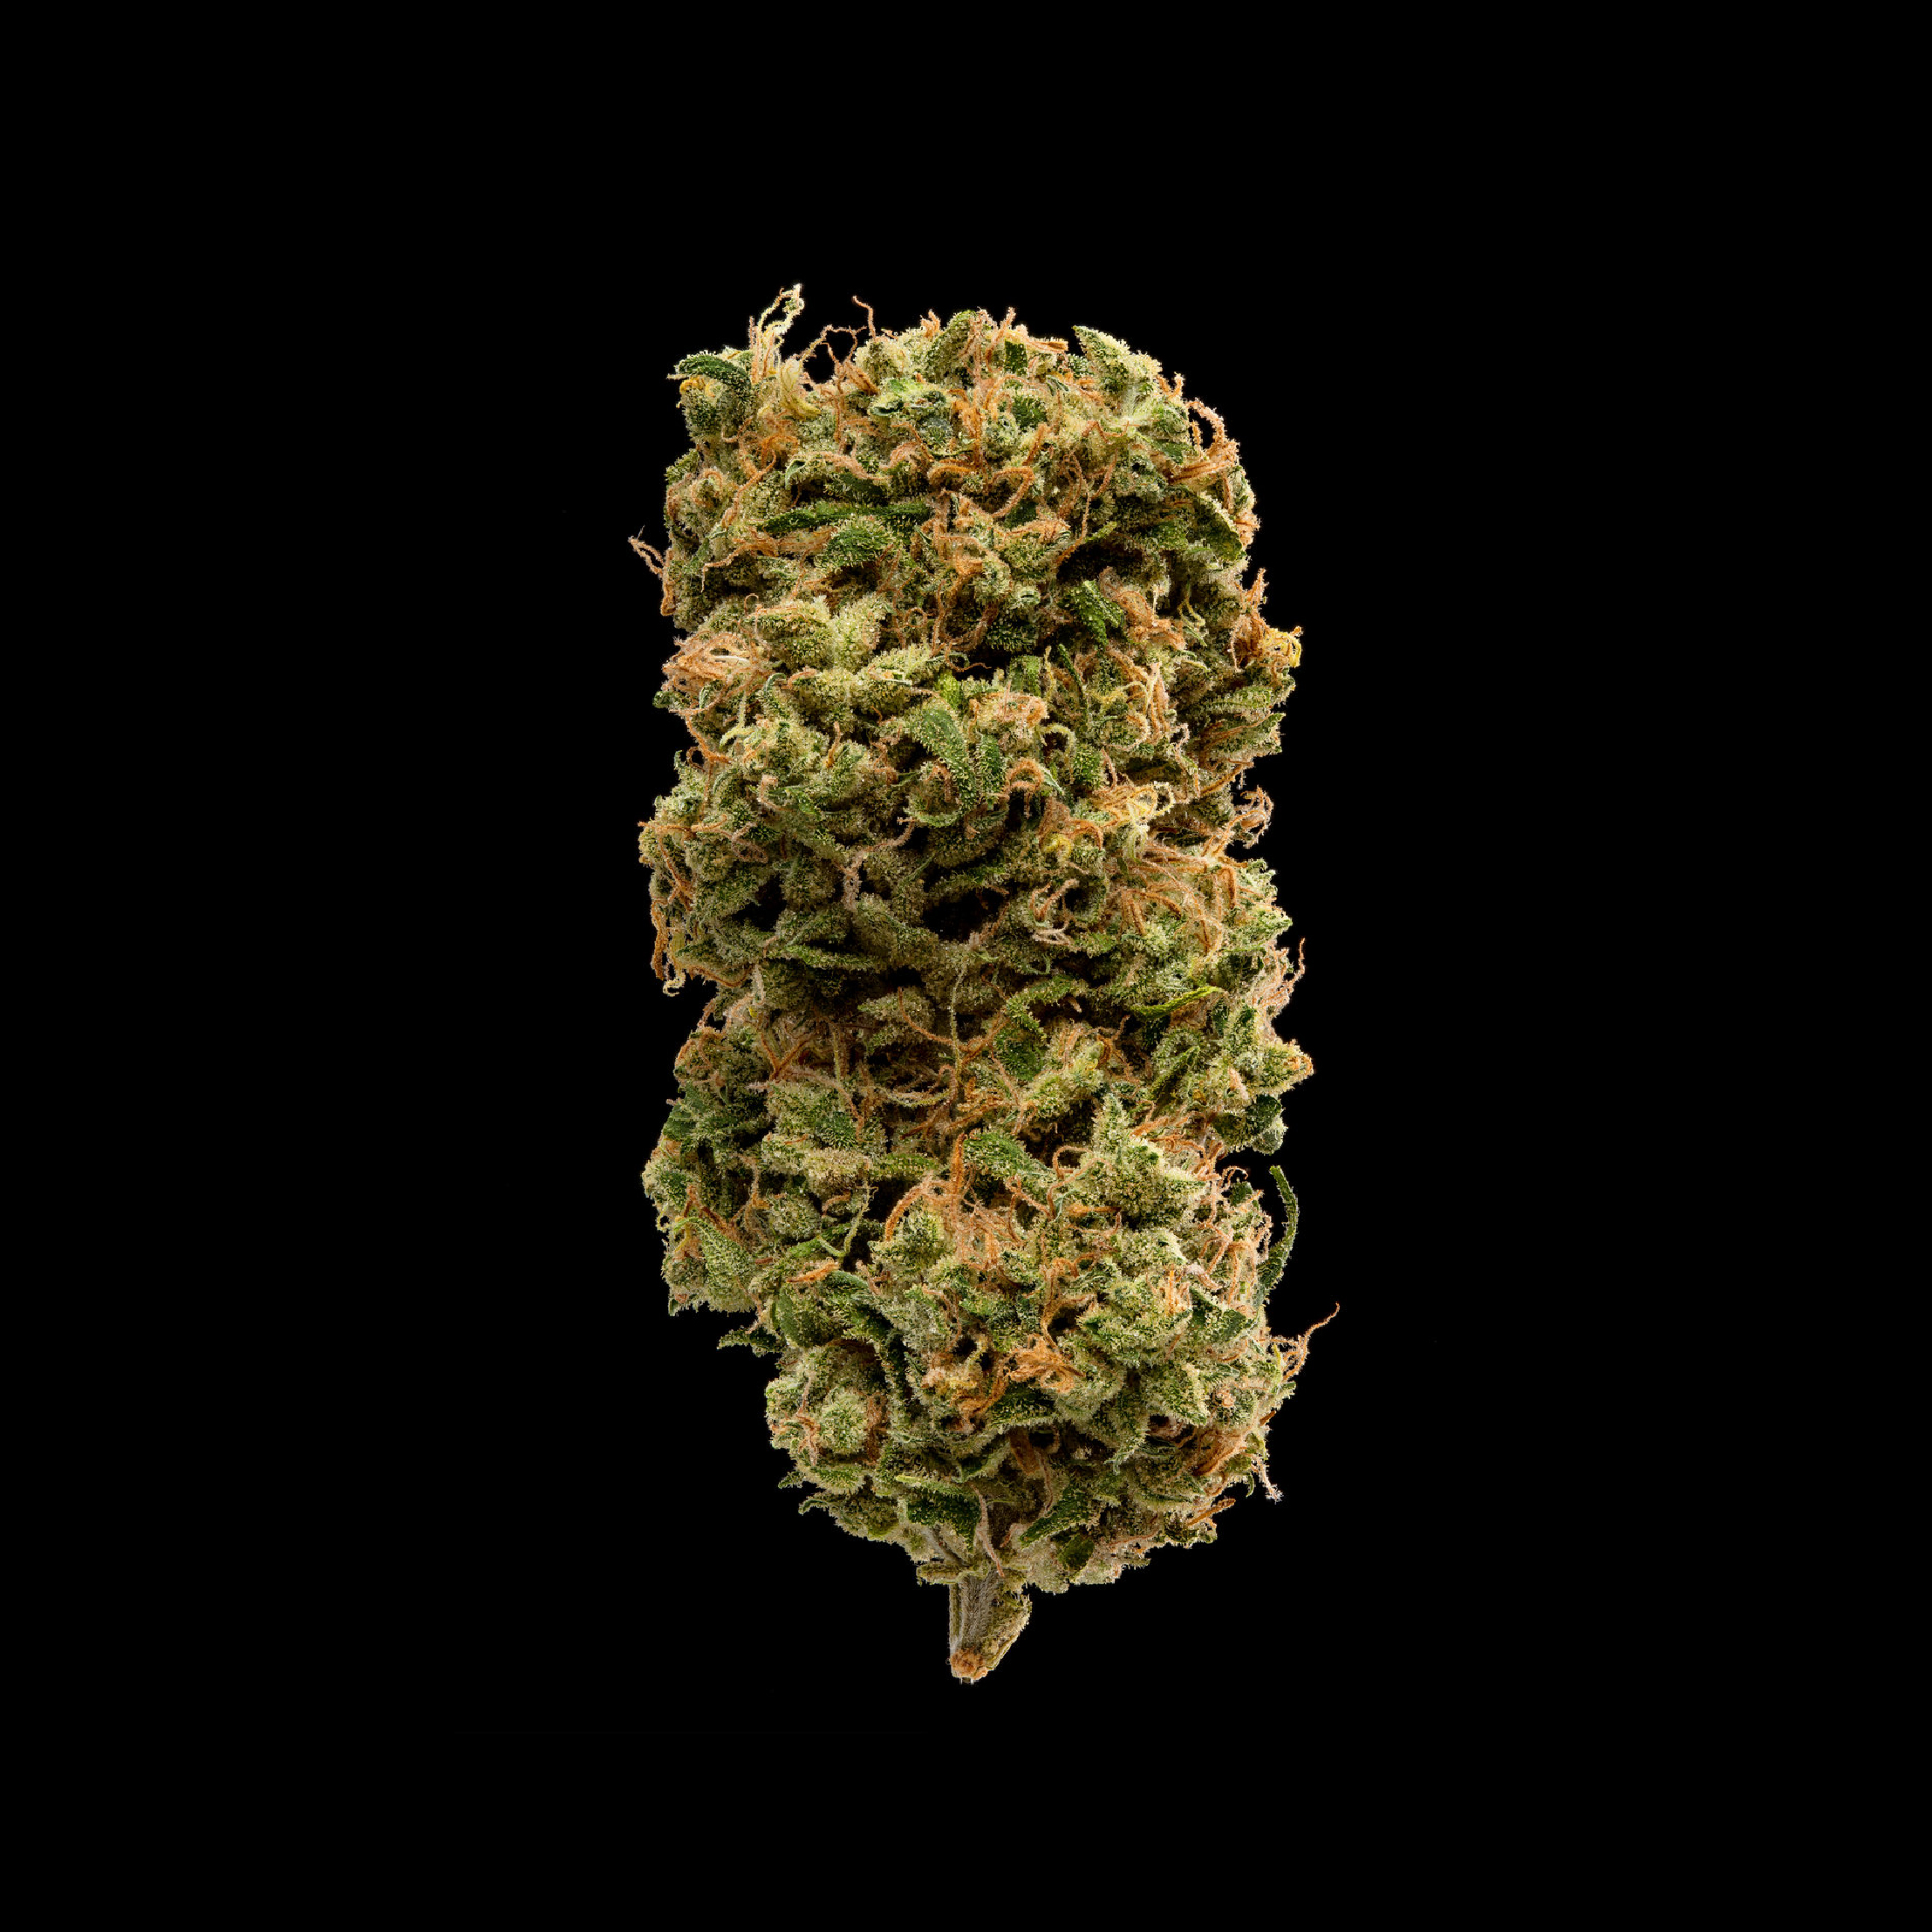 RED CONGOLESE - A sweet musky aroma heralds the unique old world genetics found in Red Congo. This African landrace sativa will send your soaring to new heights.